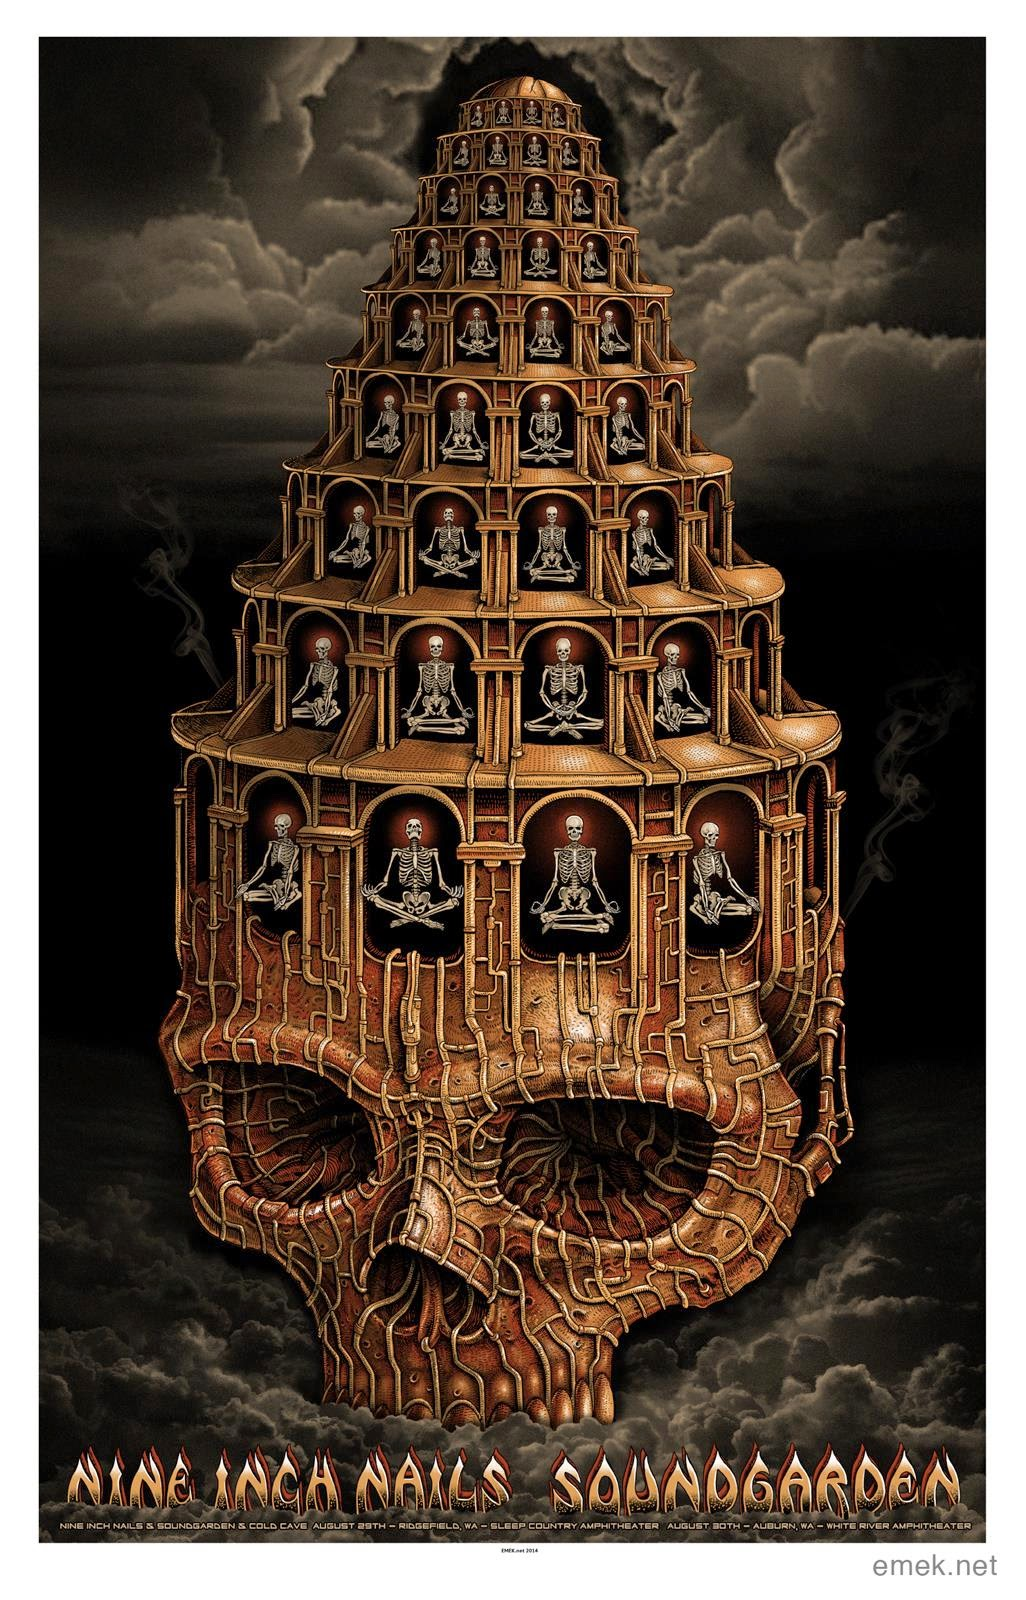 INSIDE THE ROCK POSTER FRAME BLOG: Emek Nine Inch Nails ...